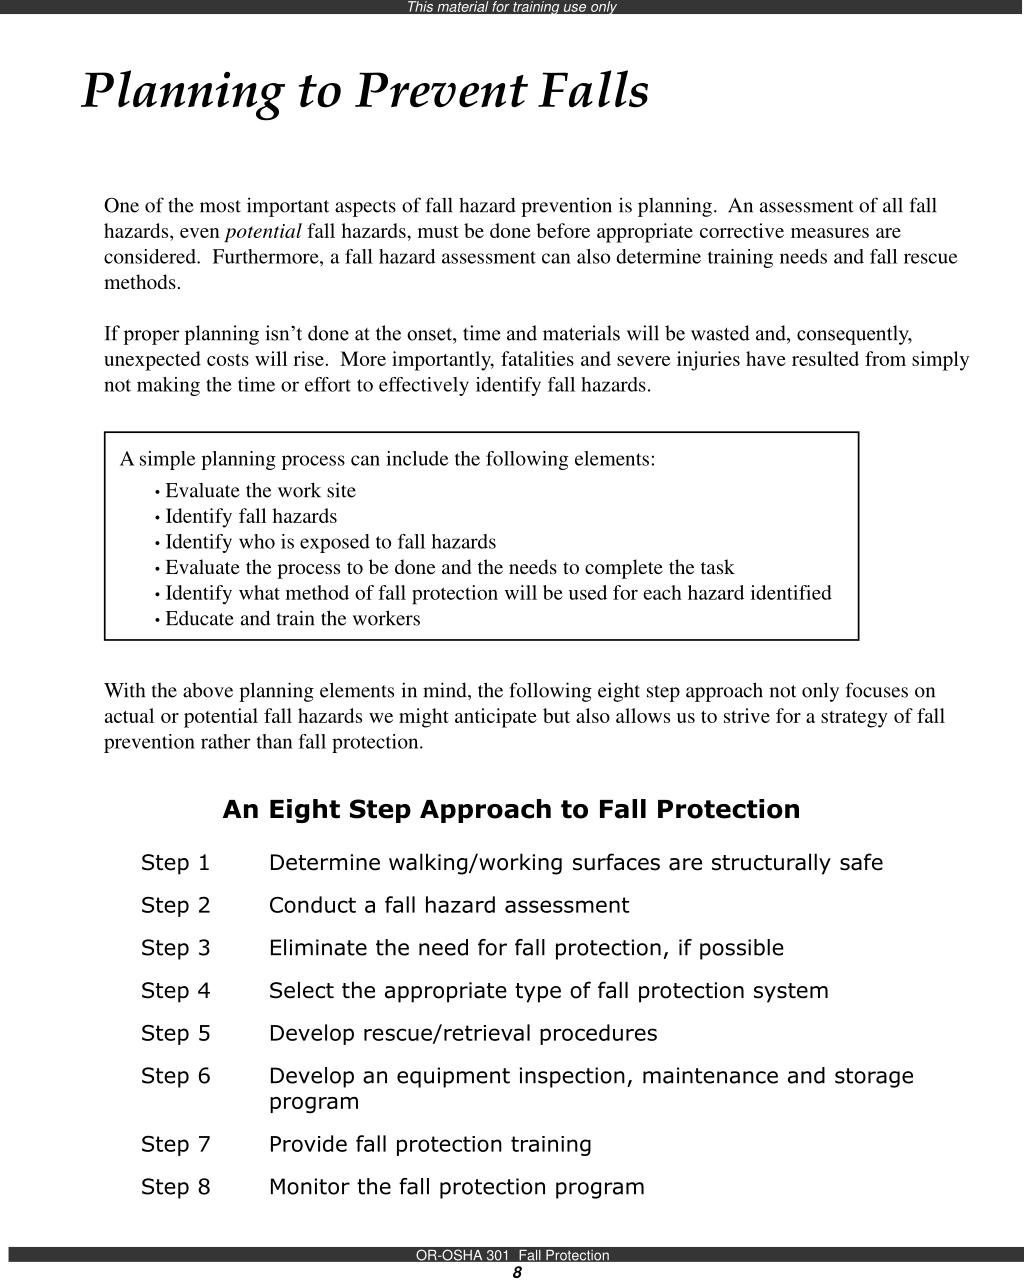 Planning to Prevent Falls